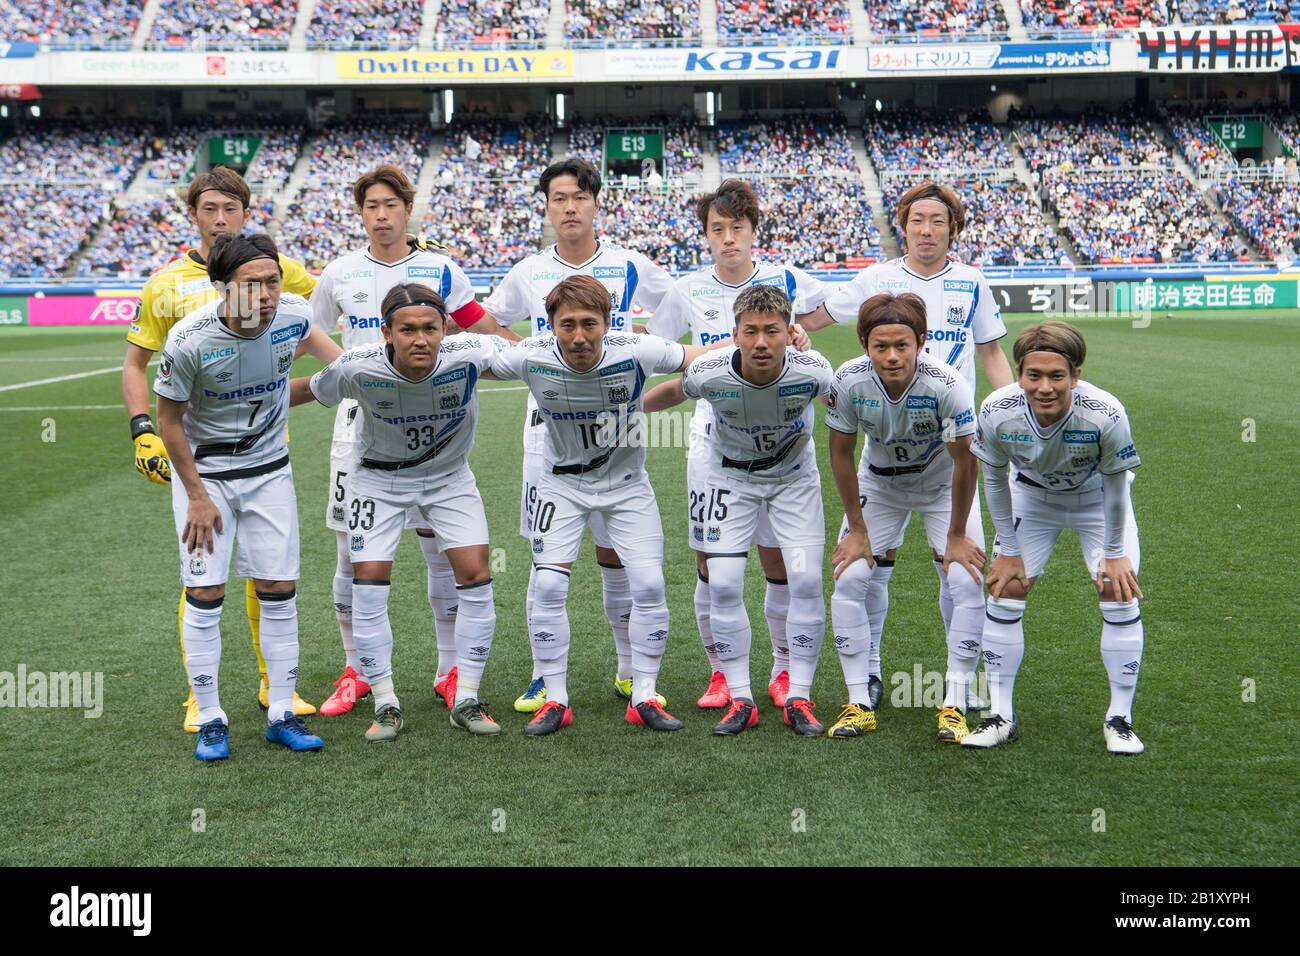 Gamba Osaka Team Group Line Up High Resolution Stock Photography And Images Alamy